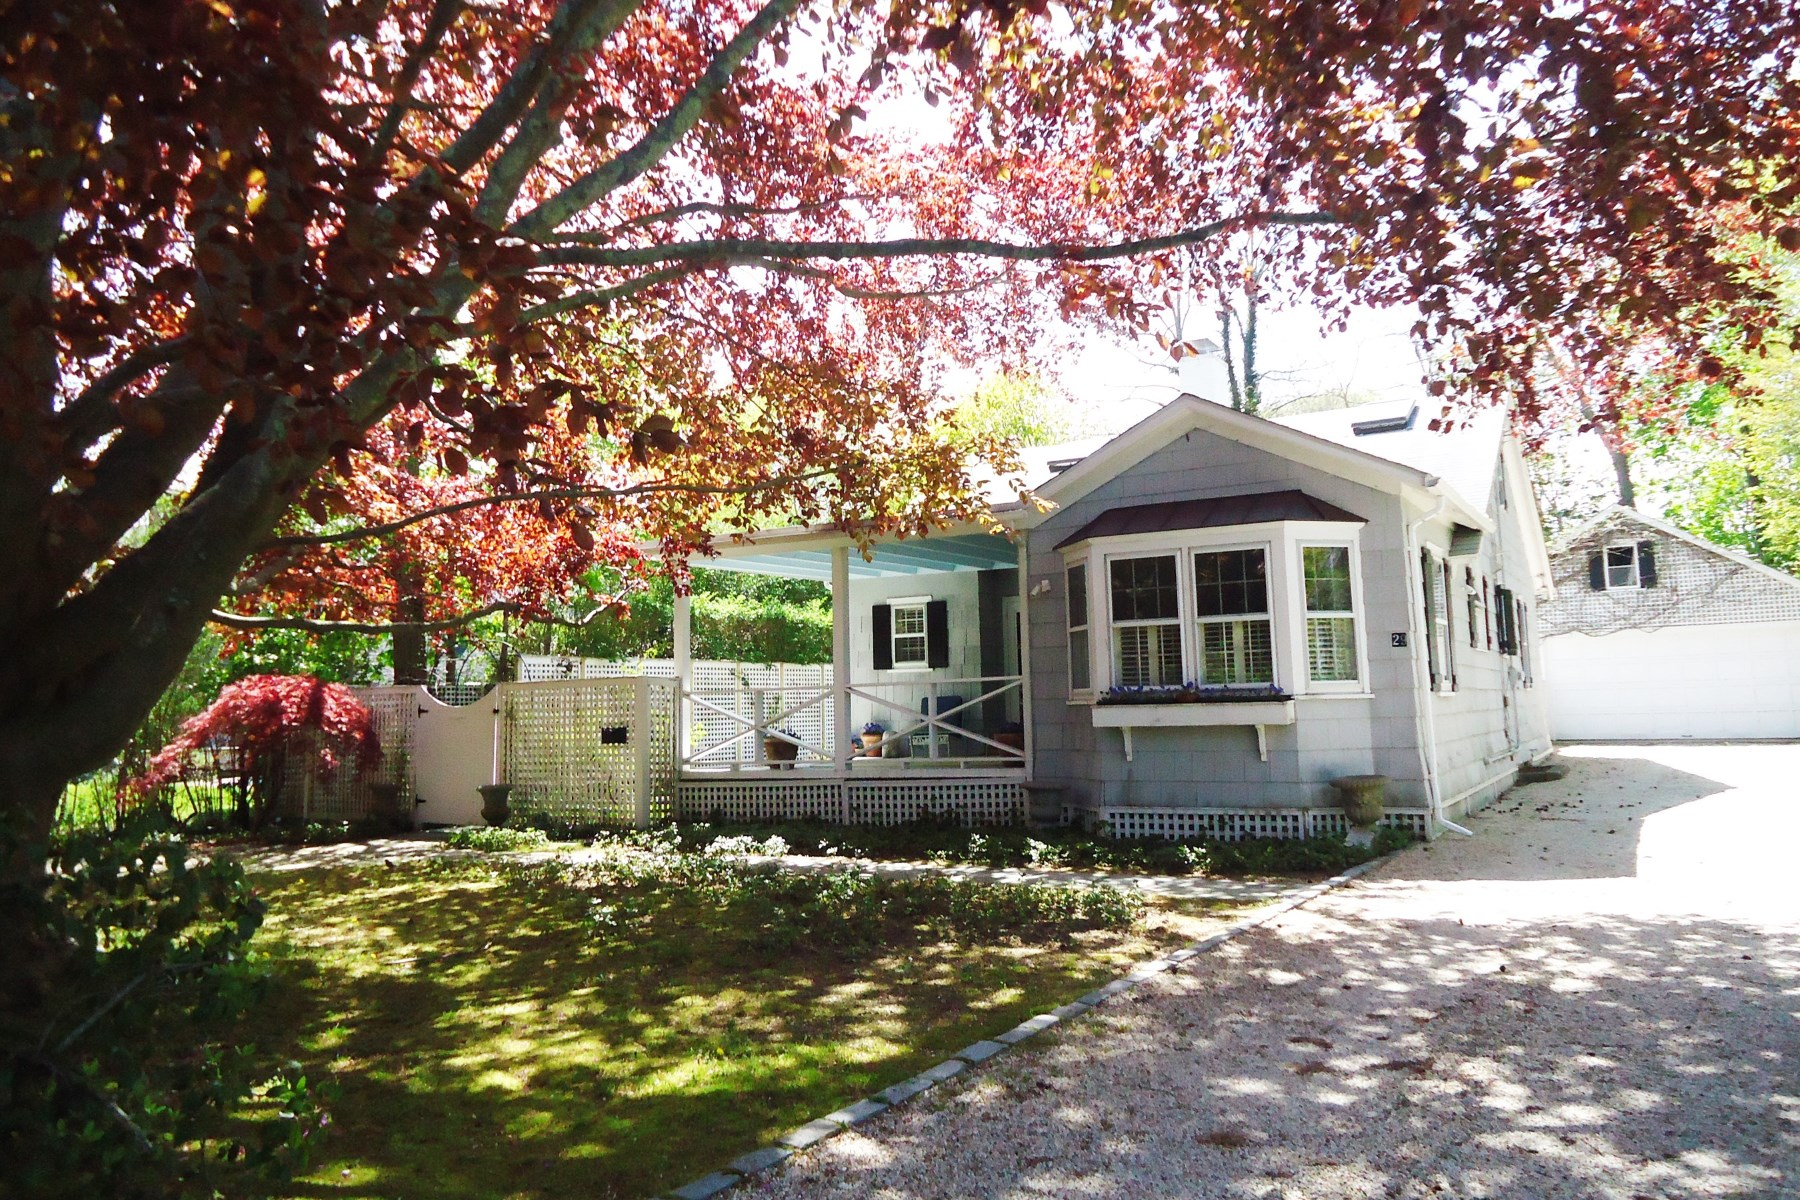 Single Family Home for Sale at Traditional Tranquil and Timeless 29 Corrigan Street Southampton, New York, 11968 United States